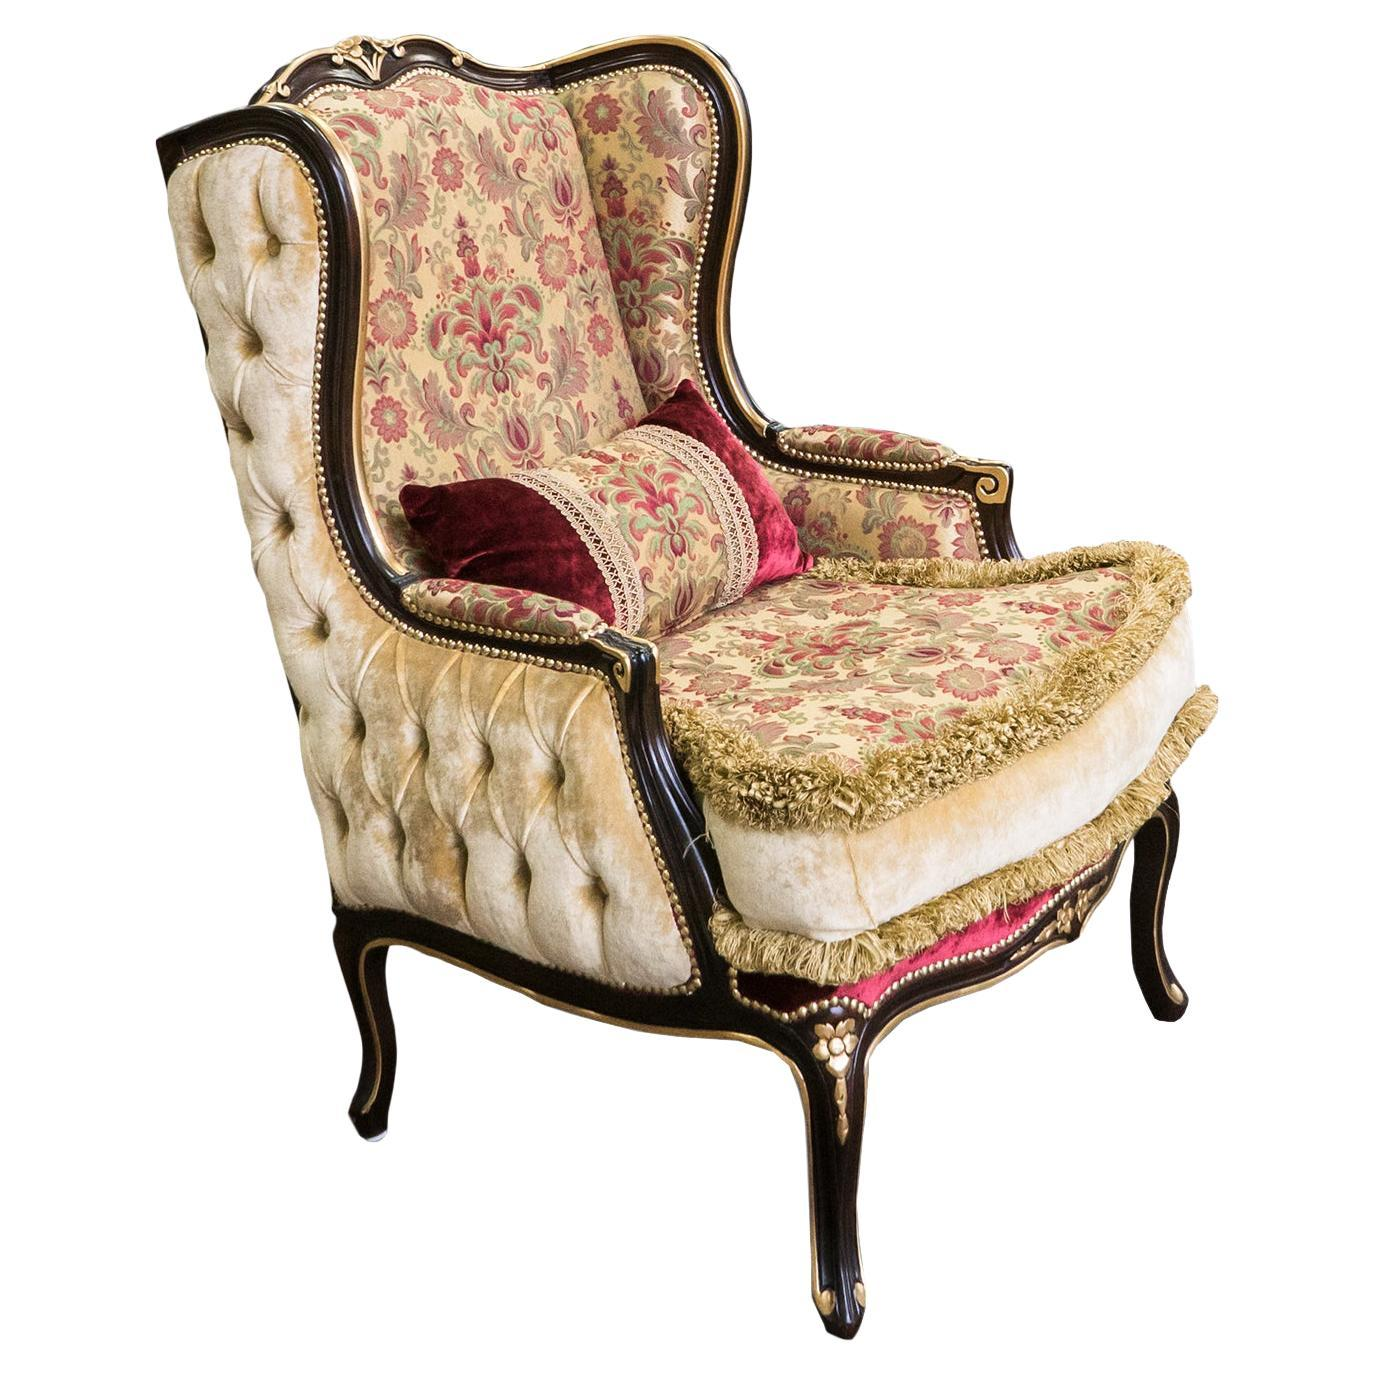 Bergere Armchair in Dark Walnut Finish and Patinated Gold Leaf by Modenese